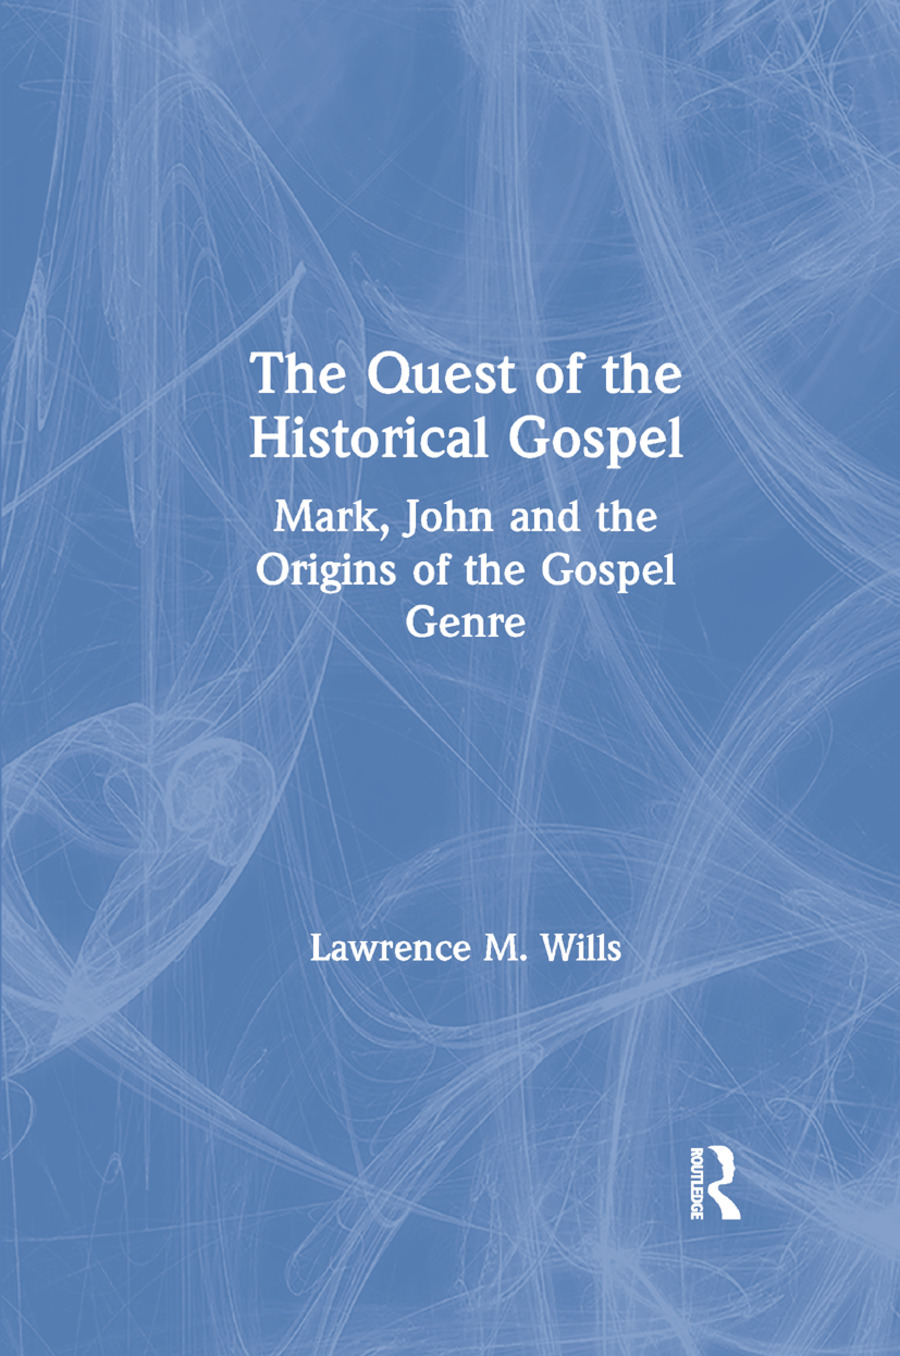 The Quest of the Historical Gospel